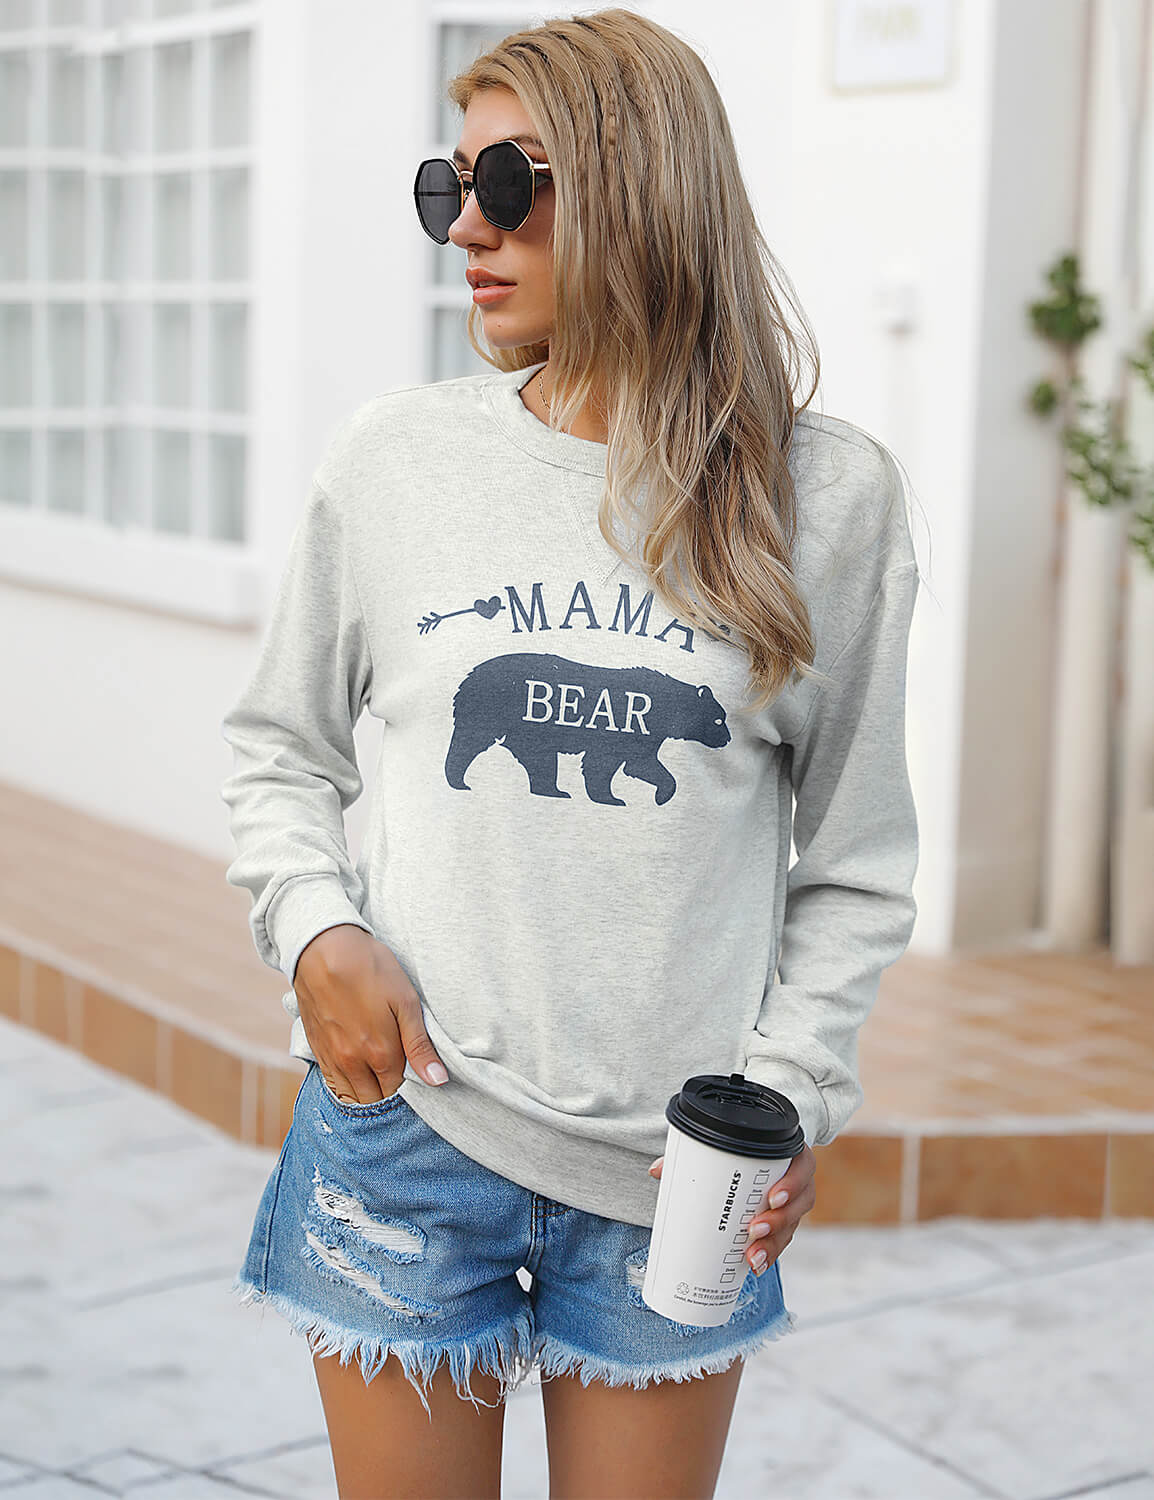 Blooming Jelly_Soft Mama Bear Sweatshirt_Letter Print Grahic Tee_304018_54_Mom Style Casual Outfits_Tops_Sweatshirt